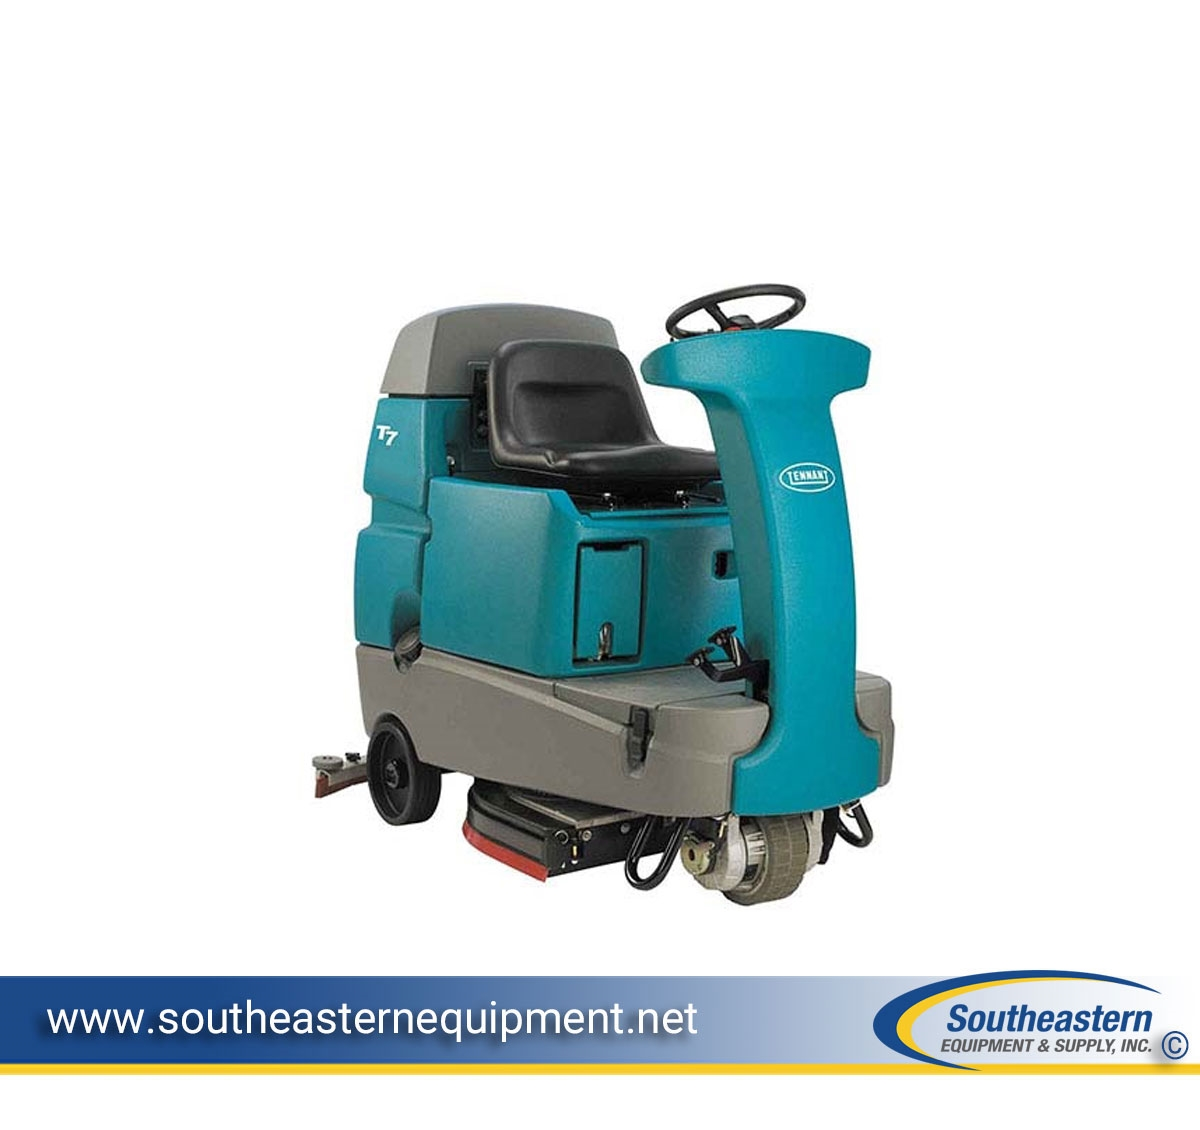 rider advenger detail shop online inch scrubber advance burned floor